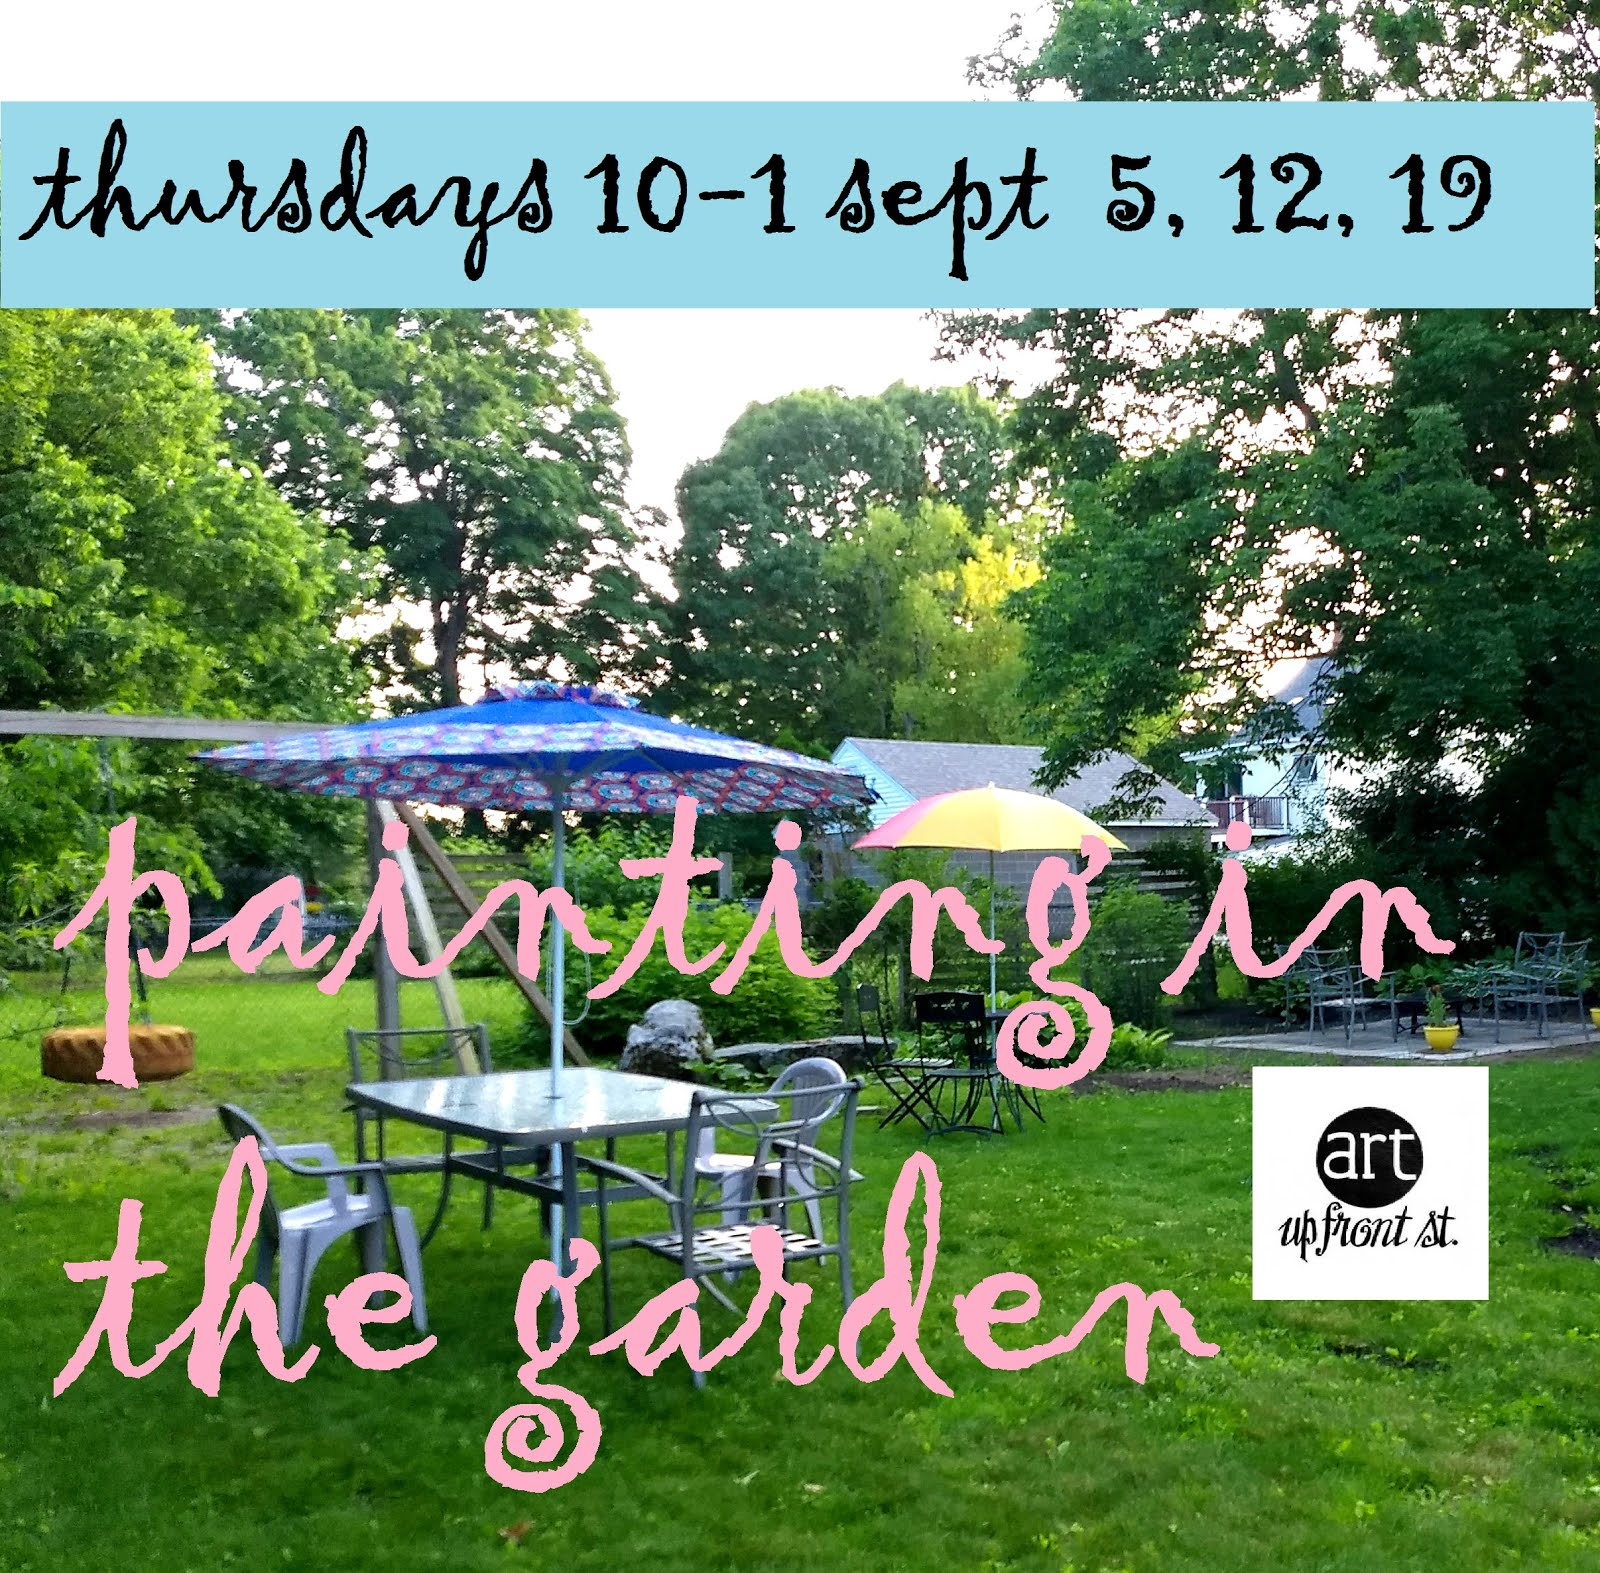 EVENT: SEPT PAINTING IN THE GARDEN SEPTEMBER  5  12  19